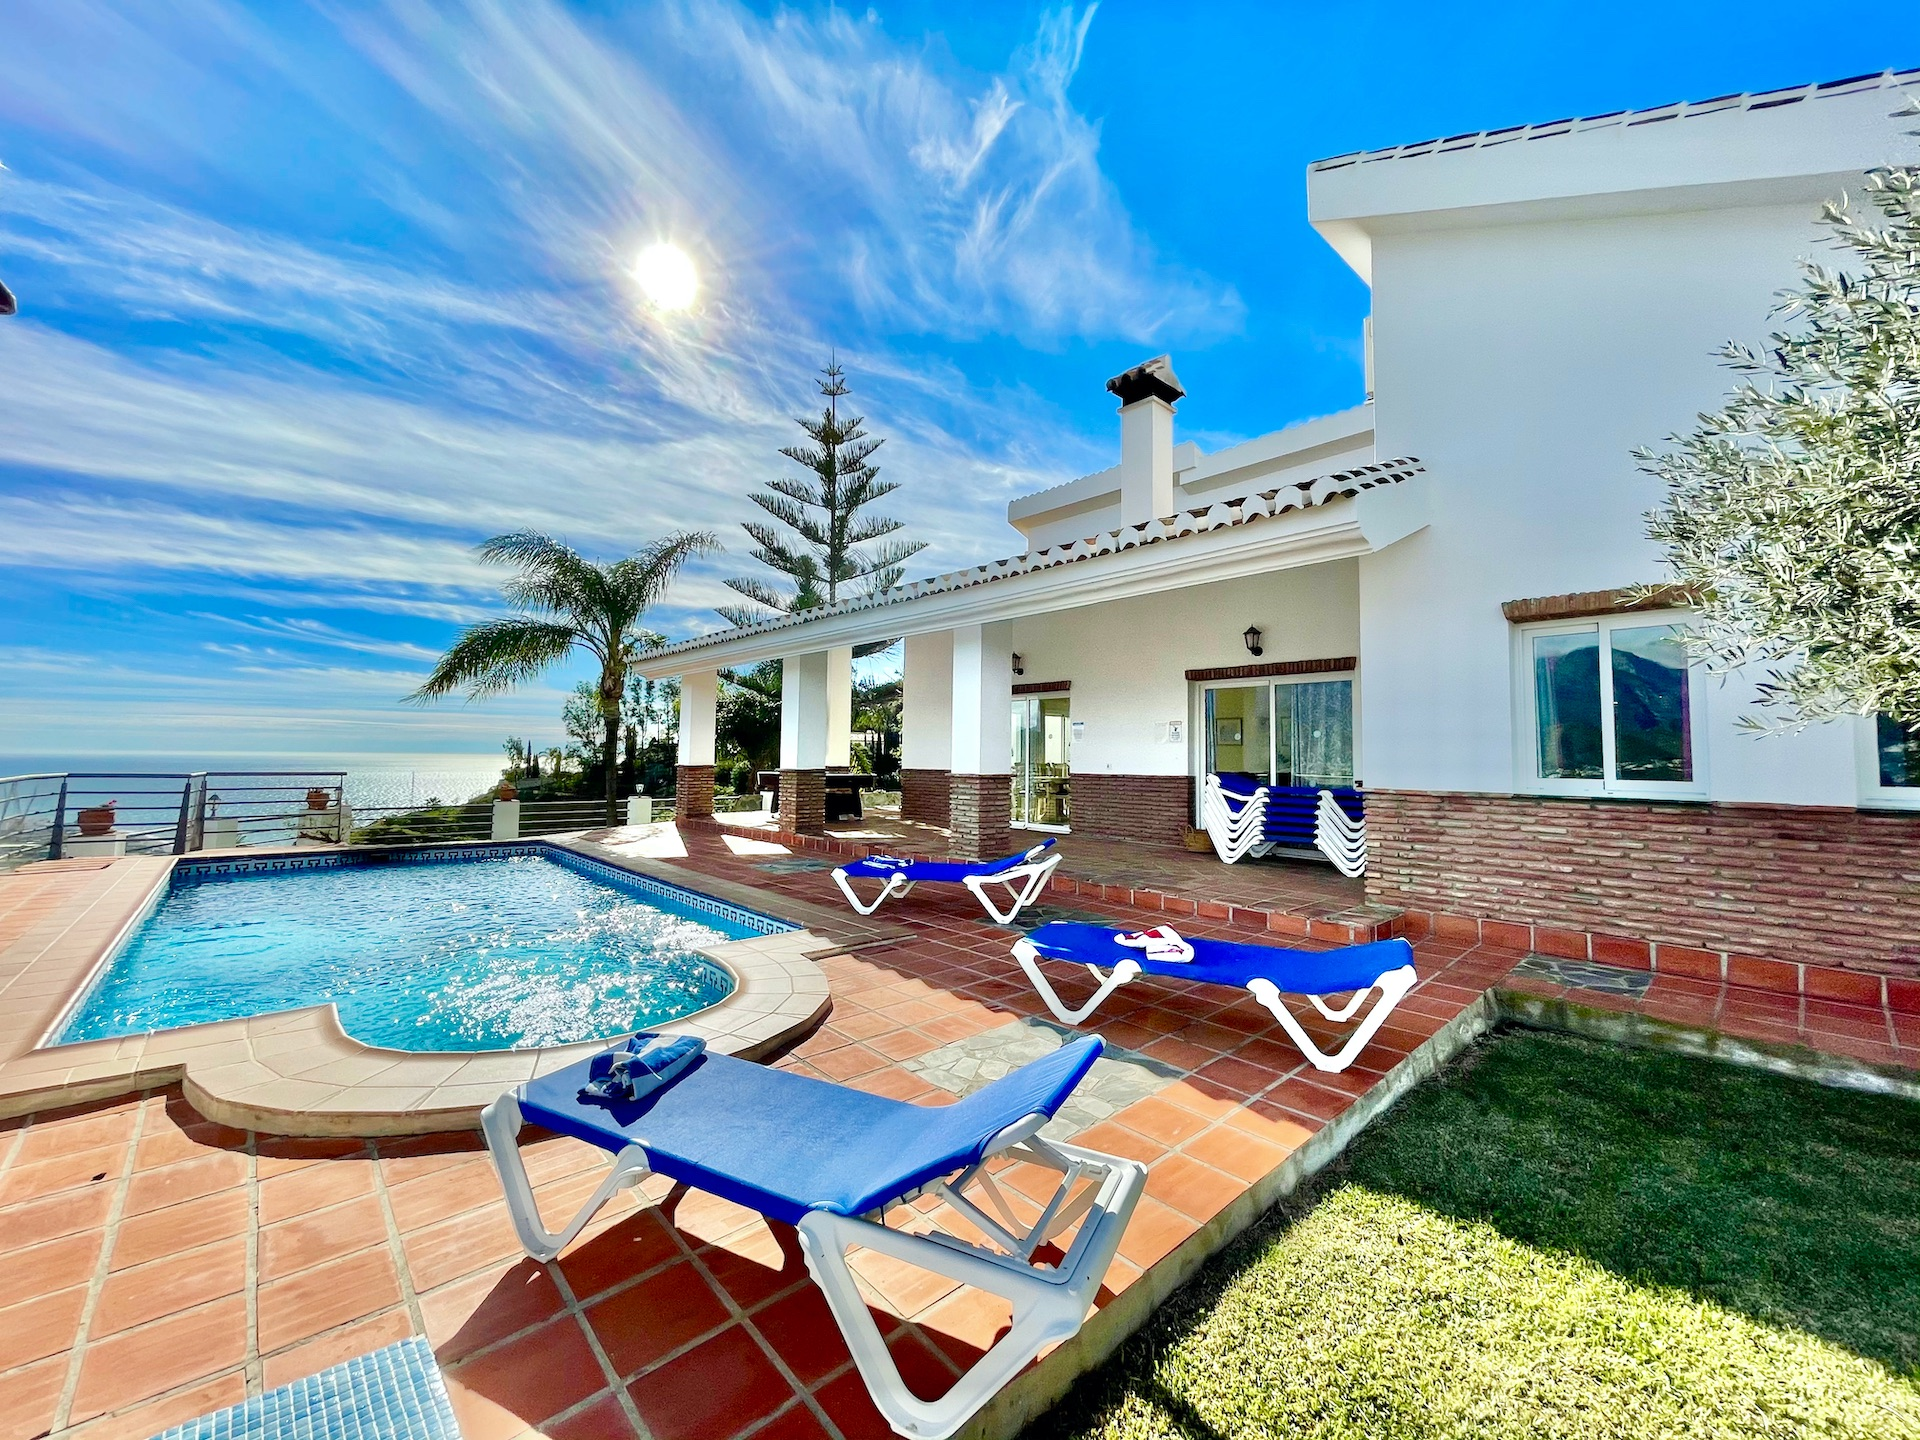 Countryside property in Nerja, for sale